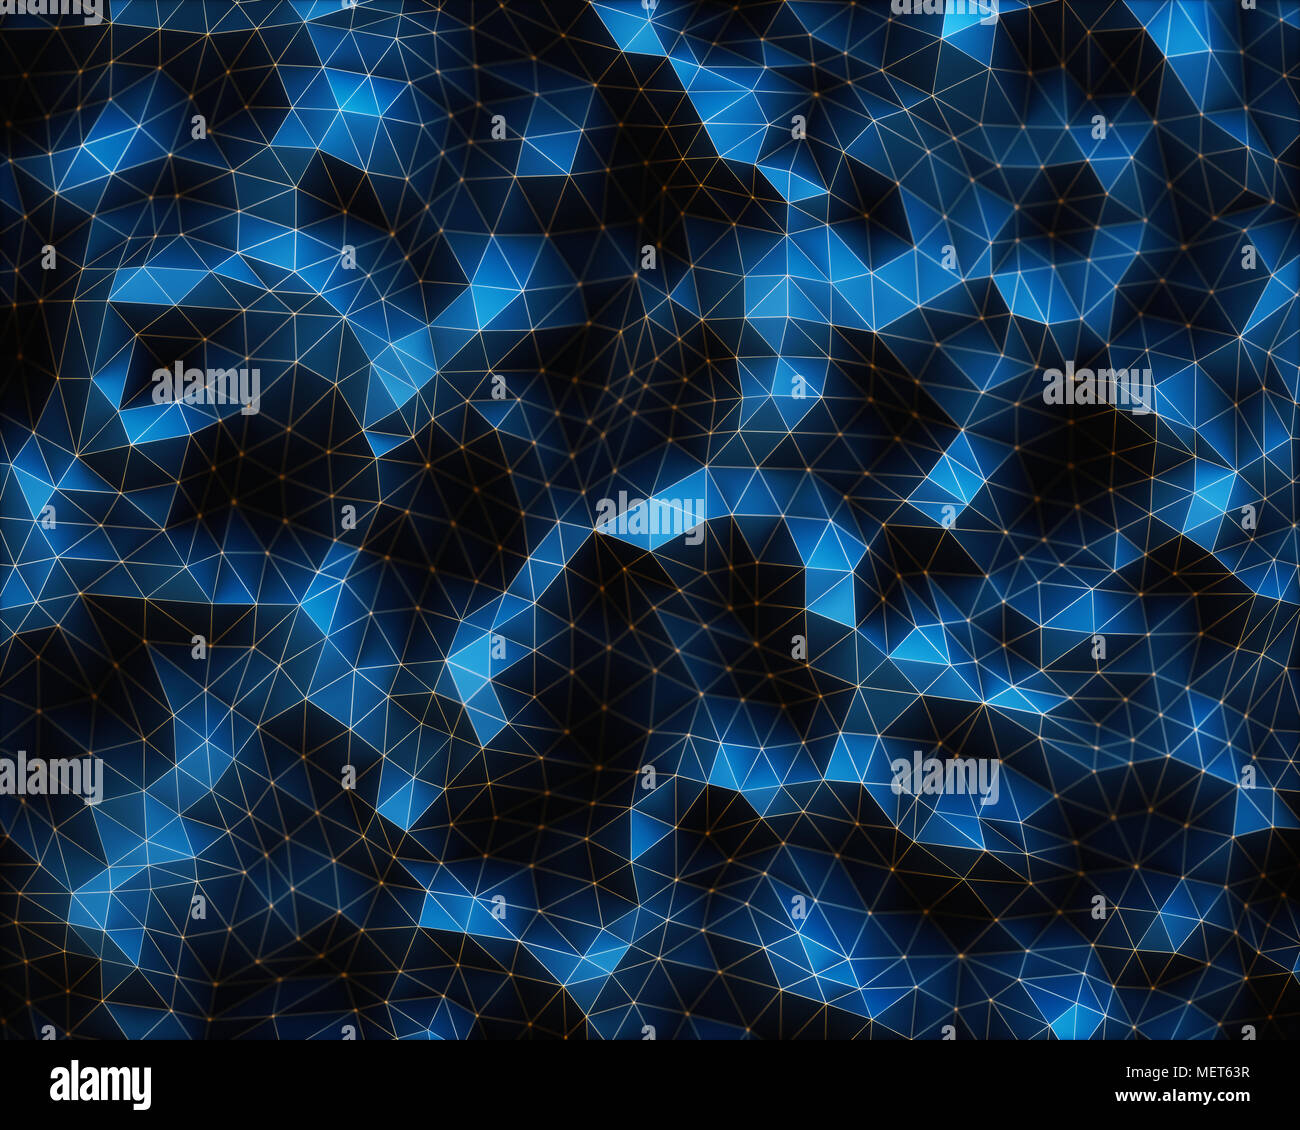 3D illustration. Abstract image, connections in lines and geometric shapes. Concept of technology for use as background. - Stock Image